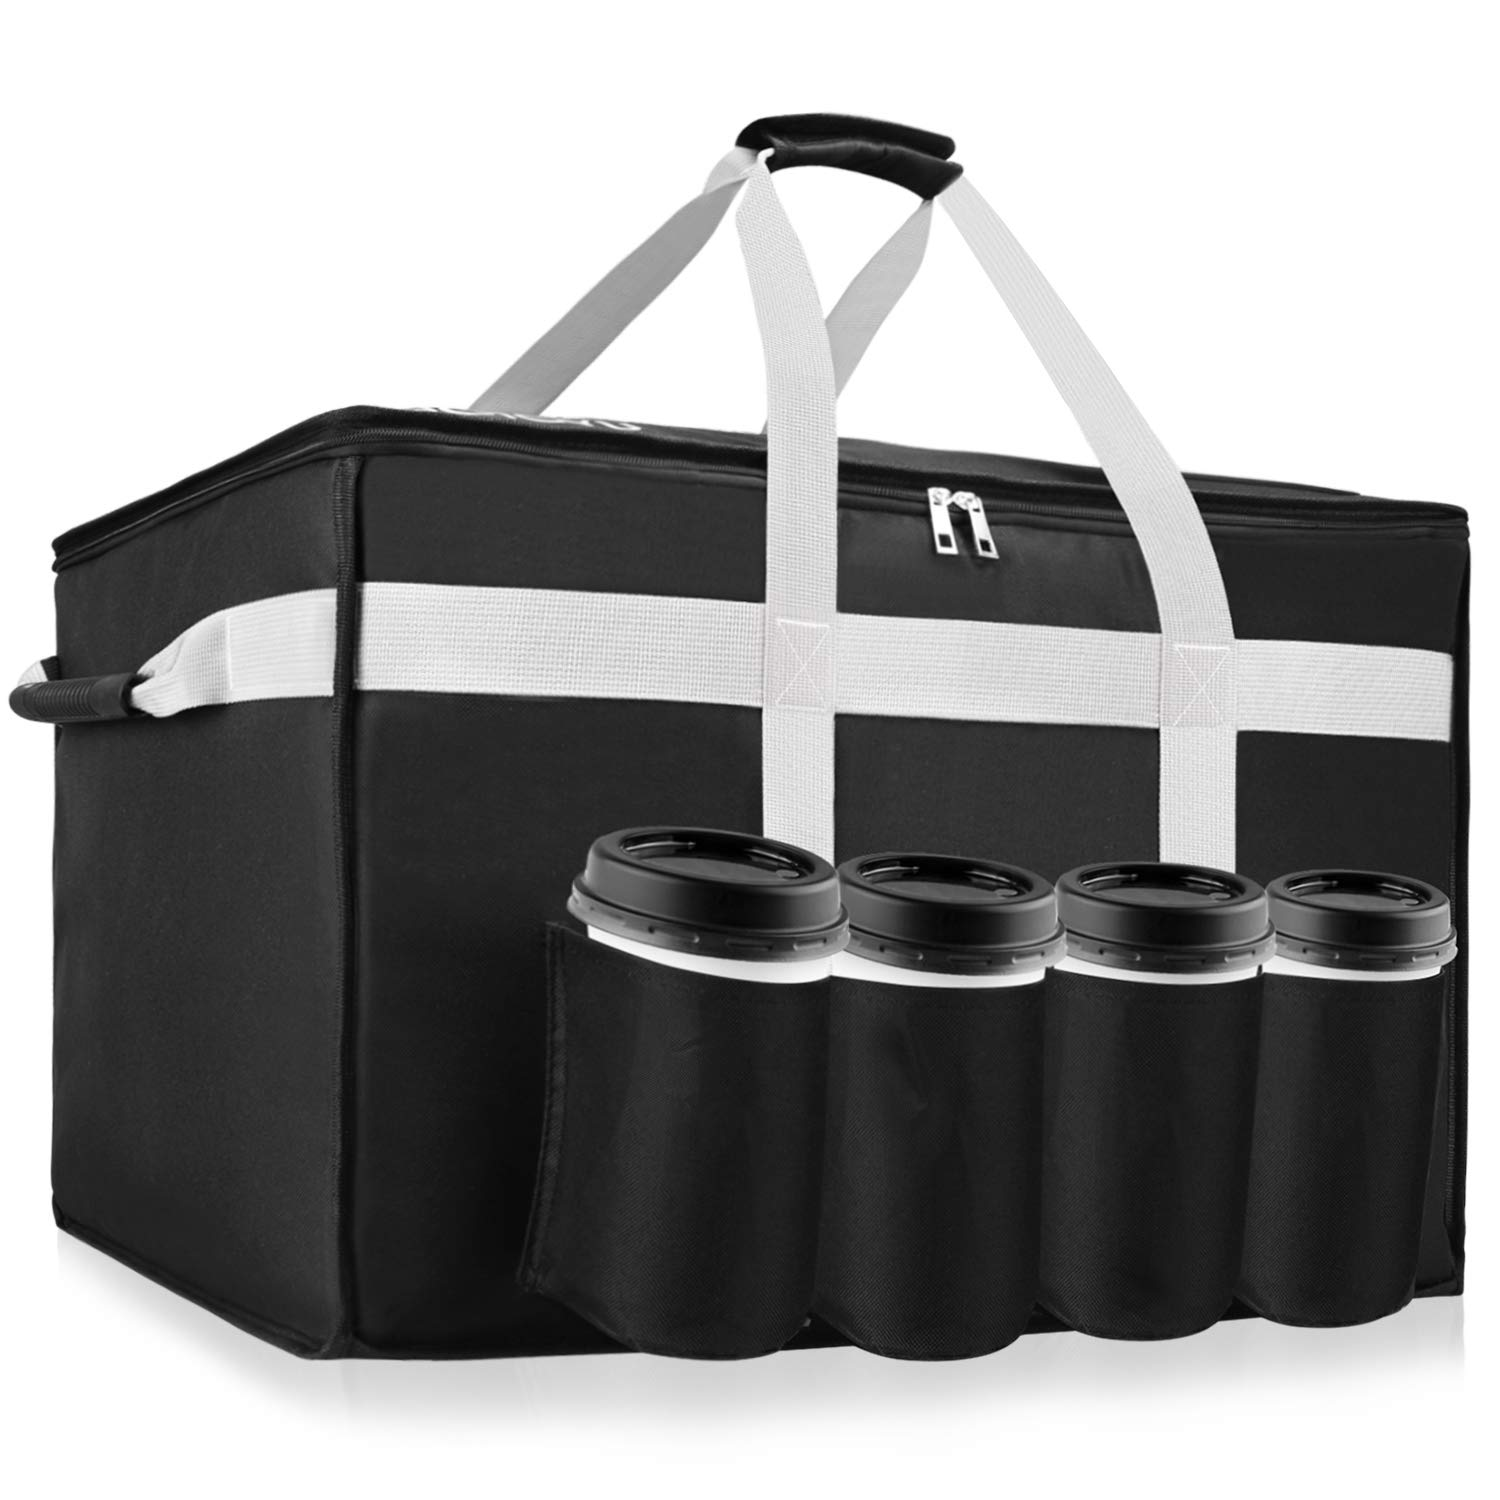 YUOIOYU Insulated Food Delivery Bag - Premium Waterproof Delivery Bag XXL with Cup Holders Grade for Hot Food Delivery/Drink Carriers, Suitable for UberEats/DoorDash/PostMates/Grubhub Food Delivery